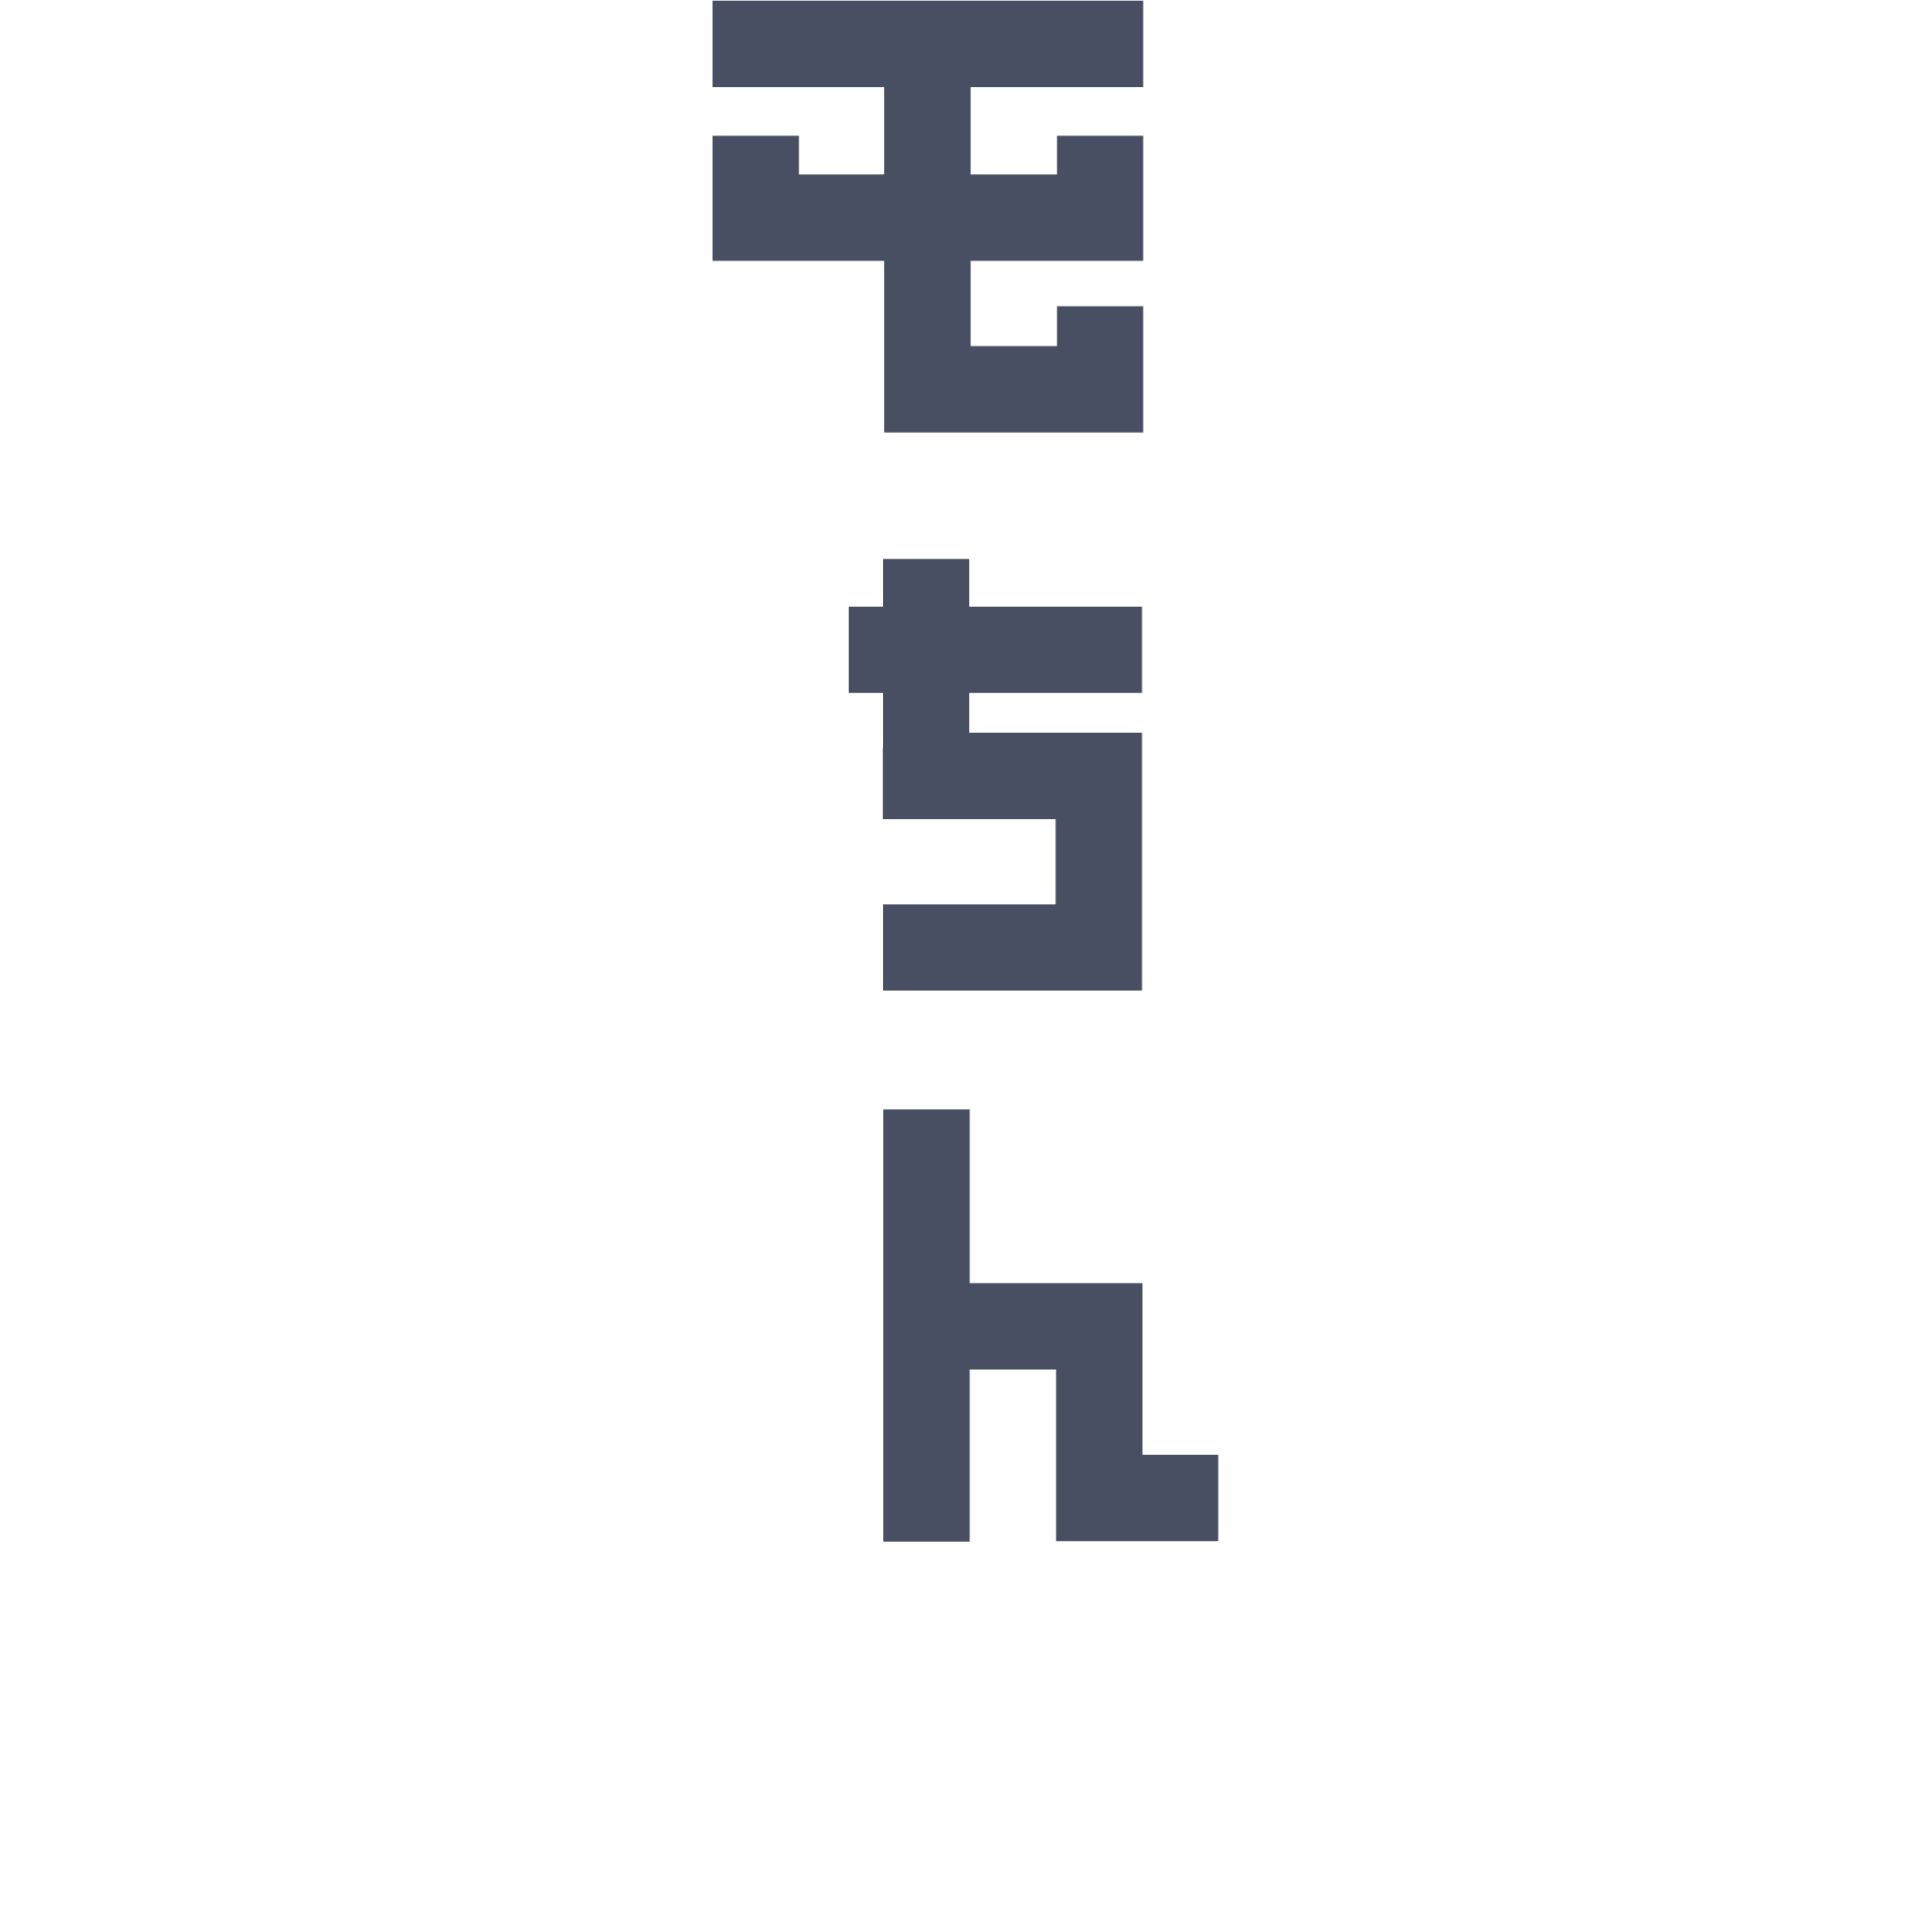 Tonchin_Letters-03-03-03-03.png